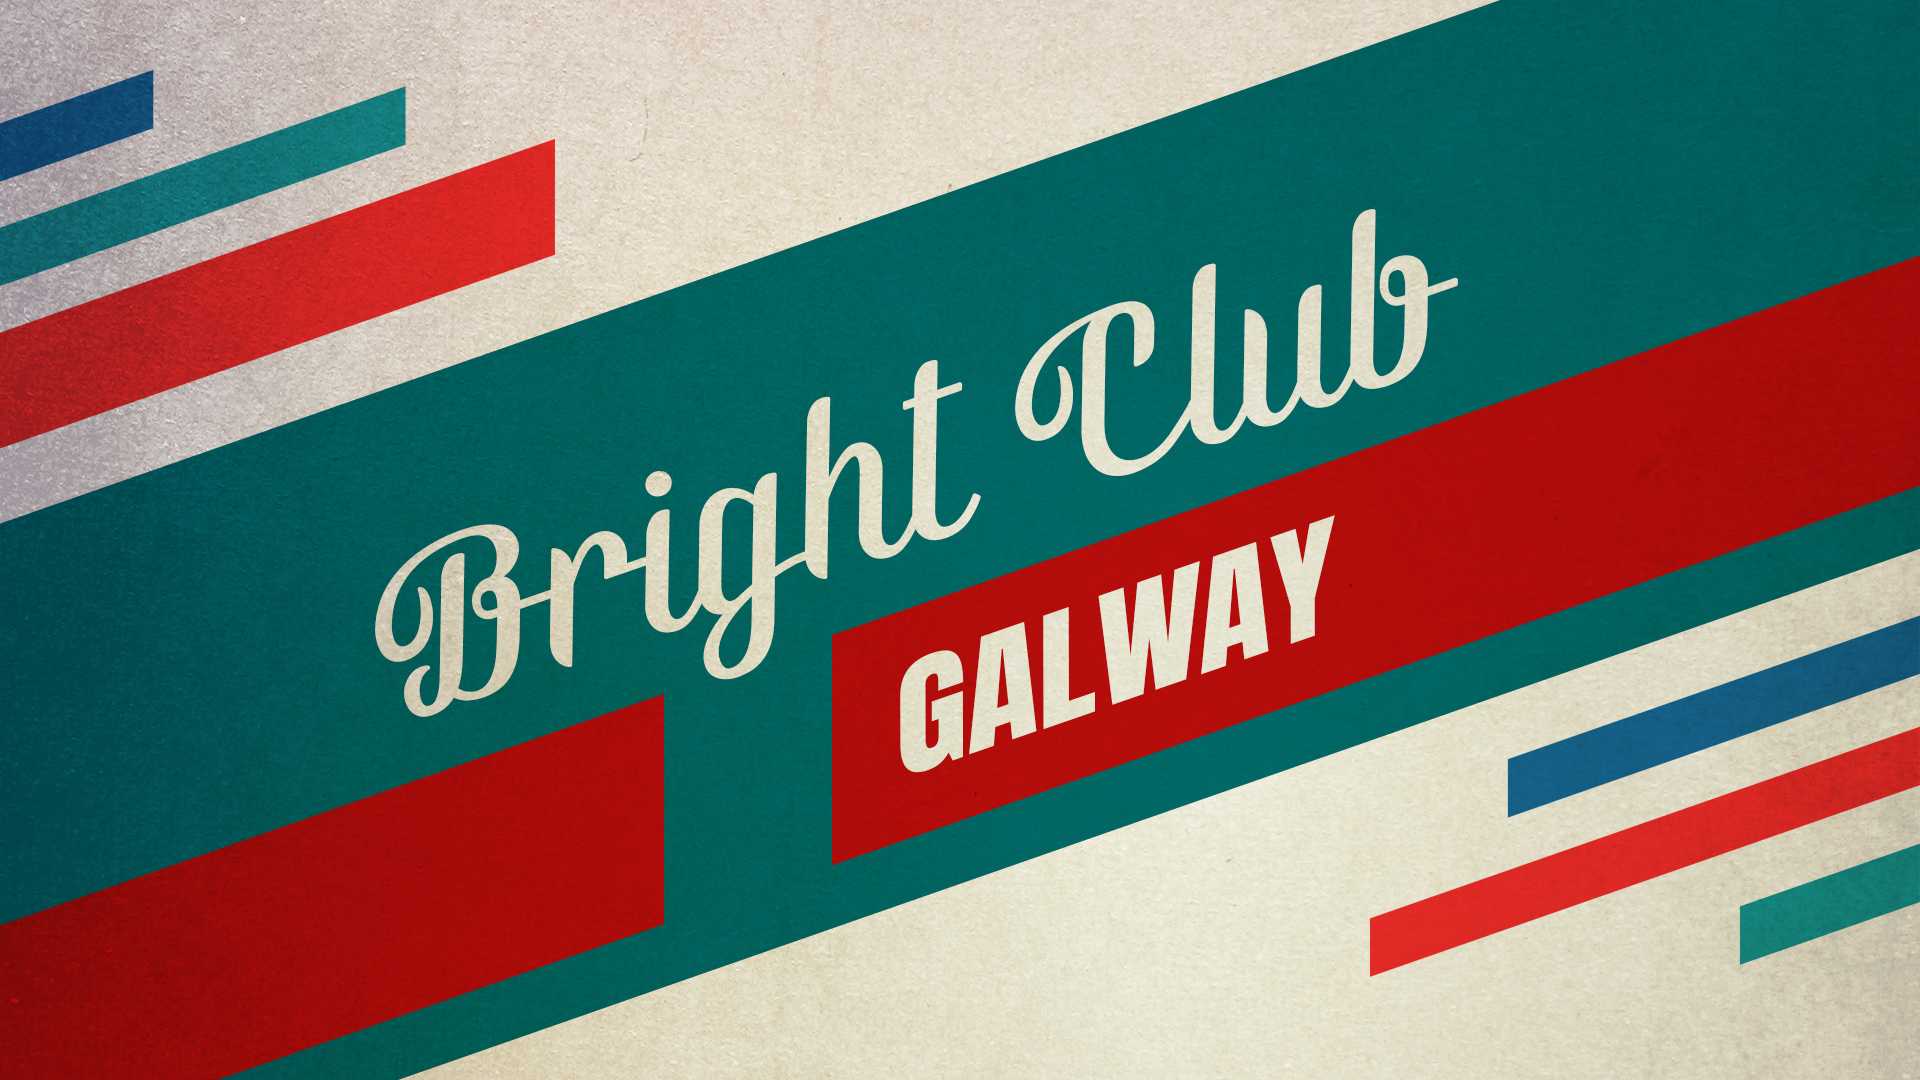 Bright Club Galway @ Vodafone Comedy Carnival